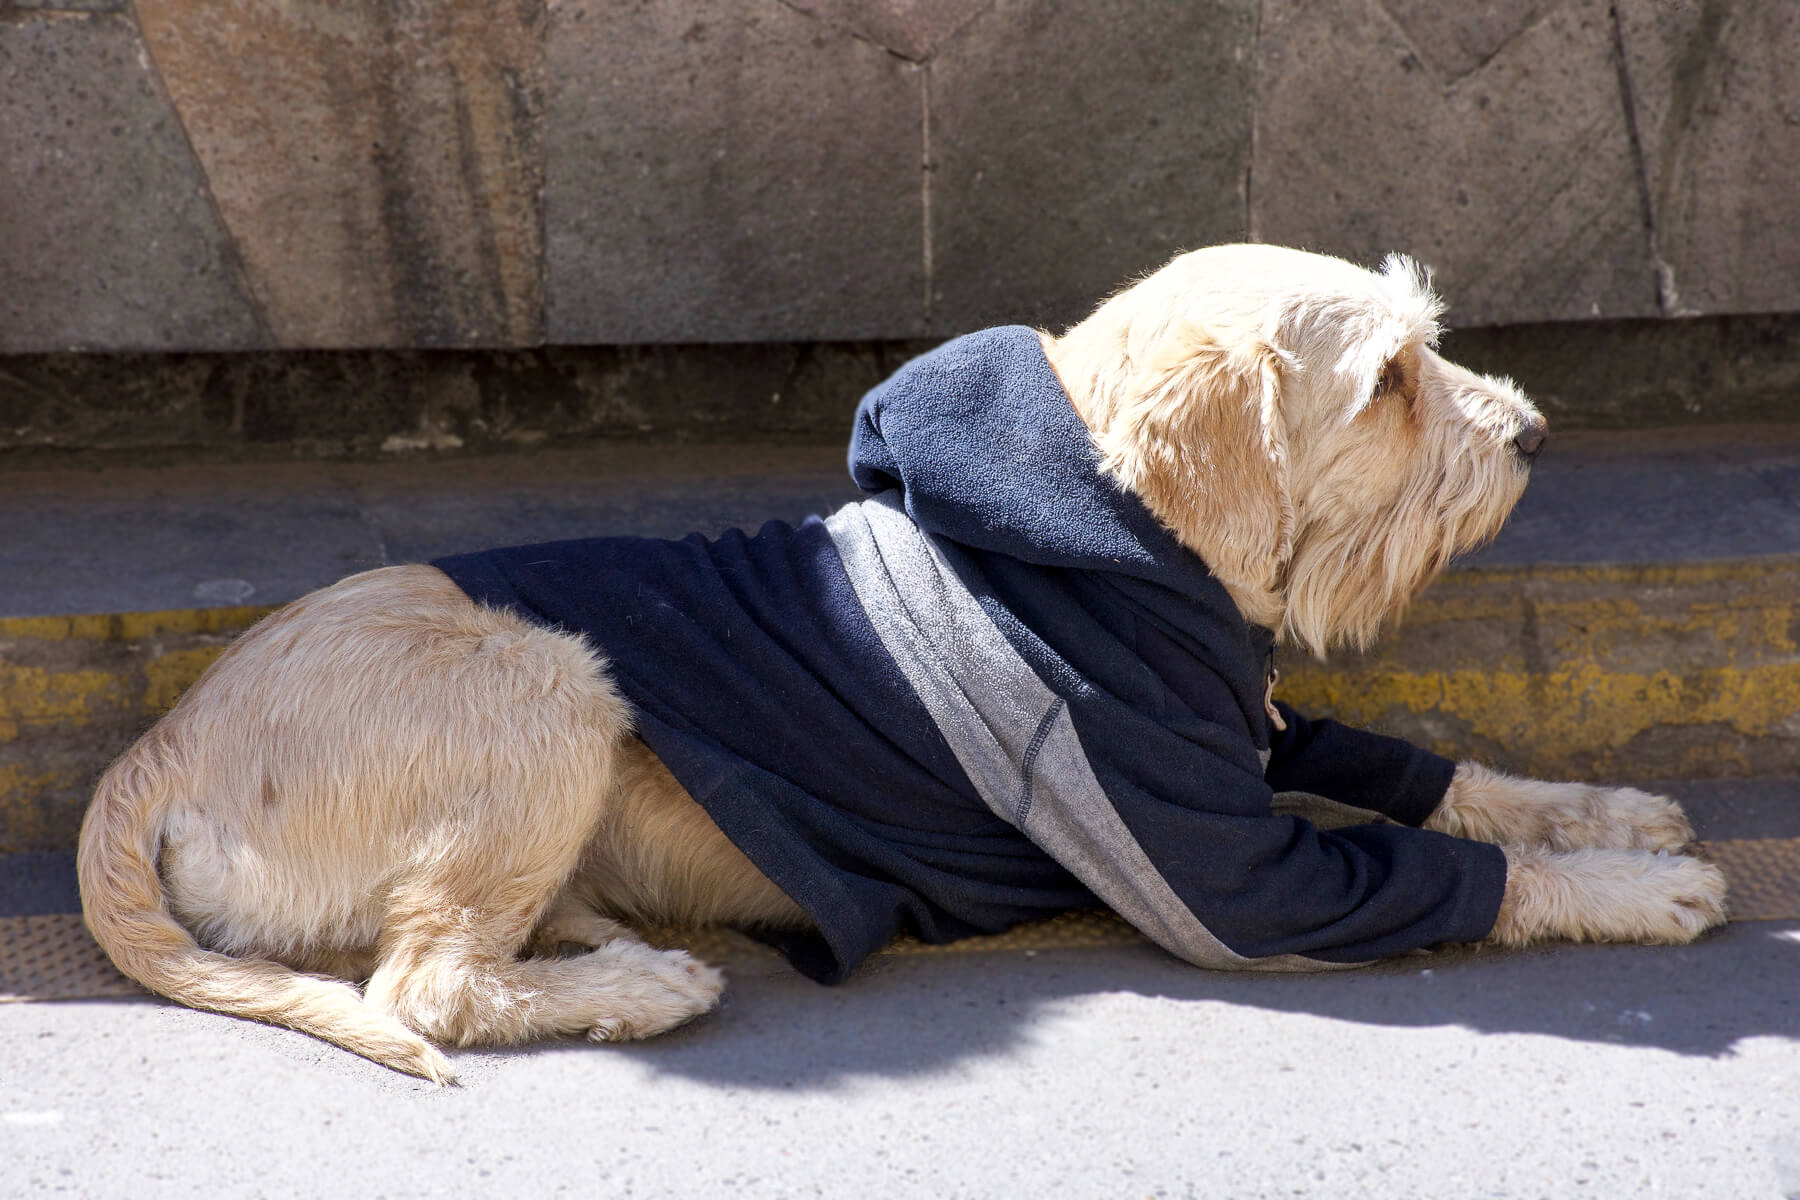 Side profile of light brown dog wearing a navy hooded jumper